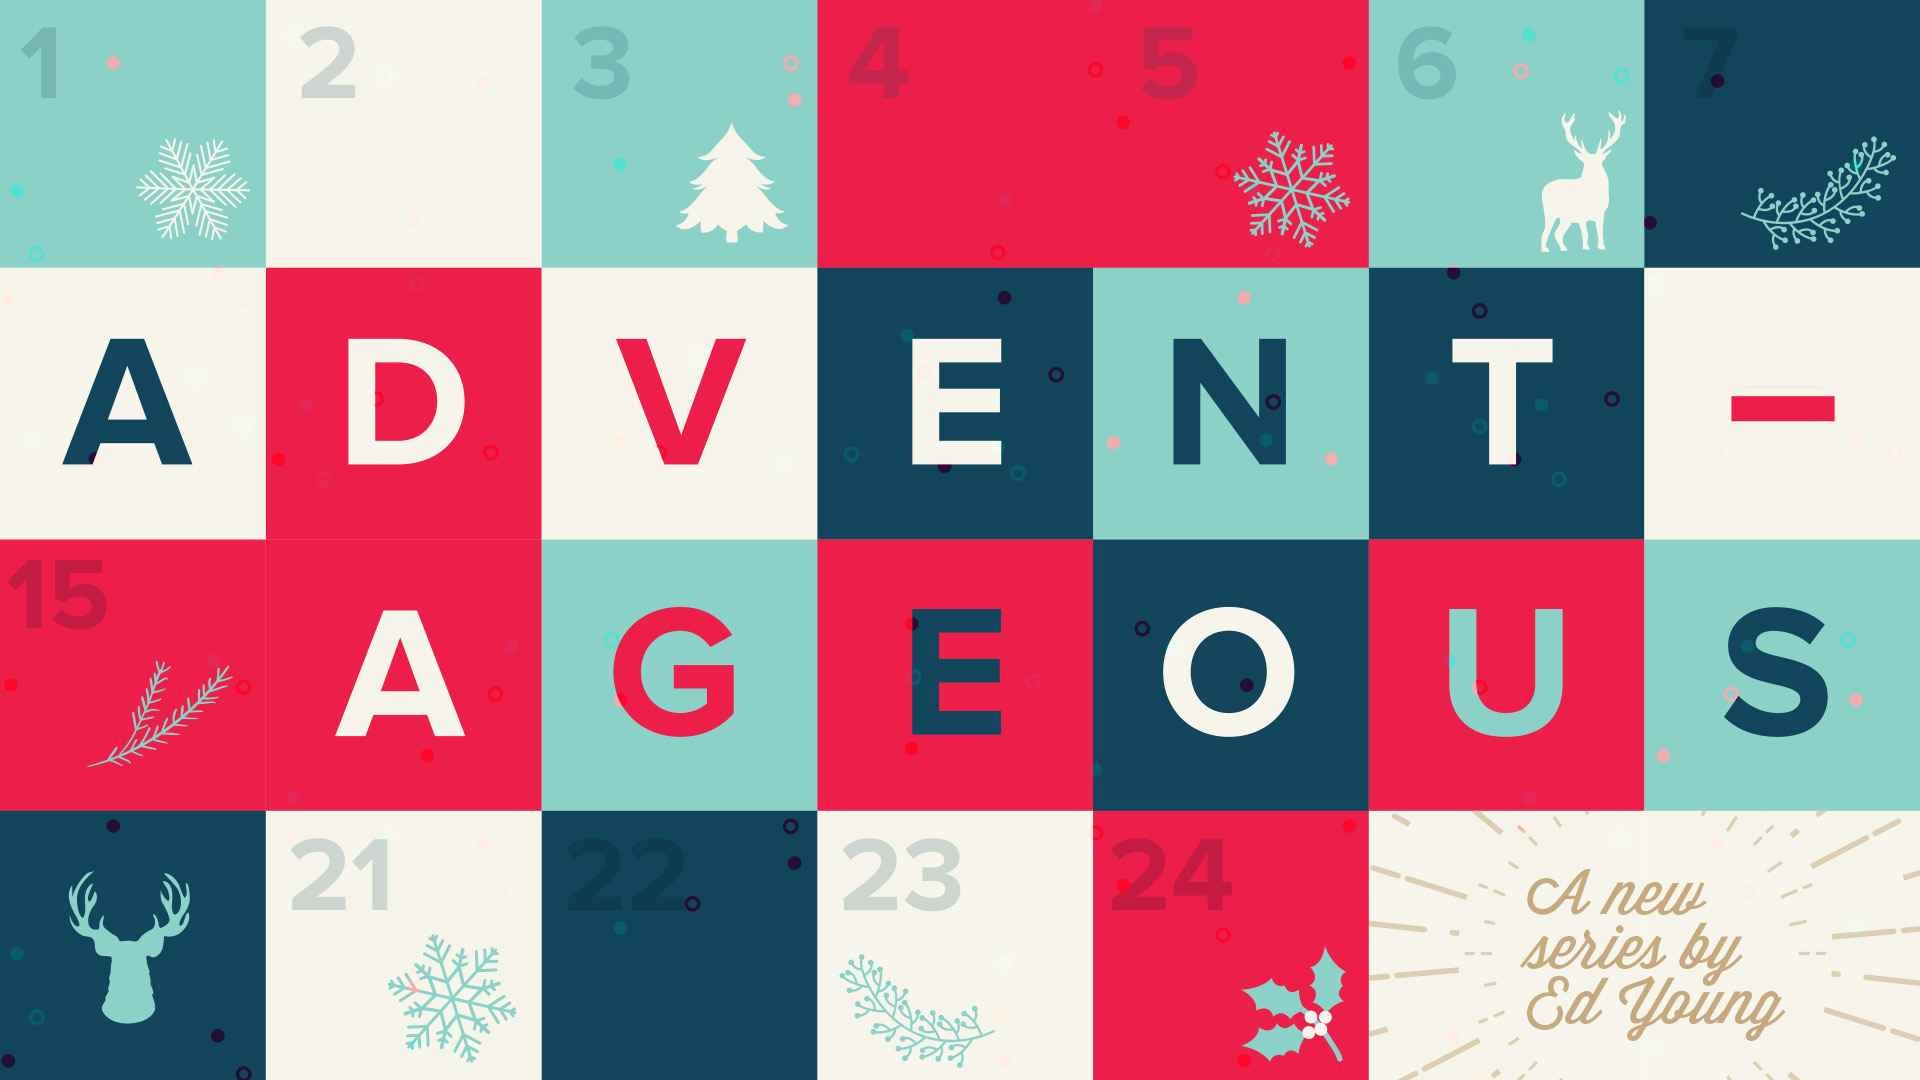 Advent-Ageous